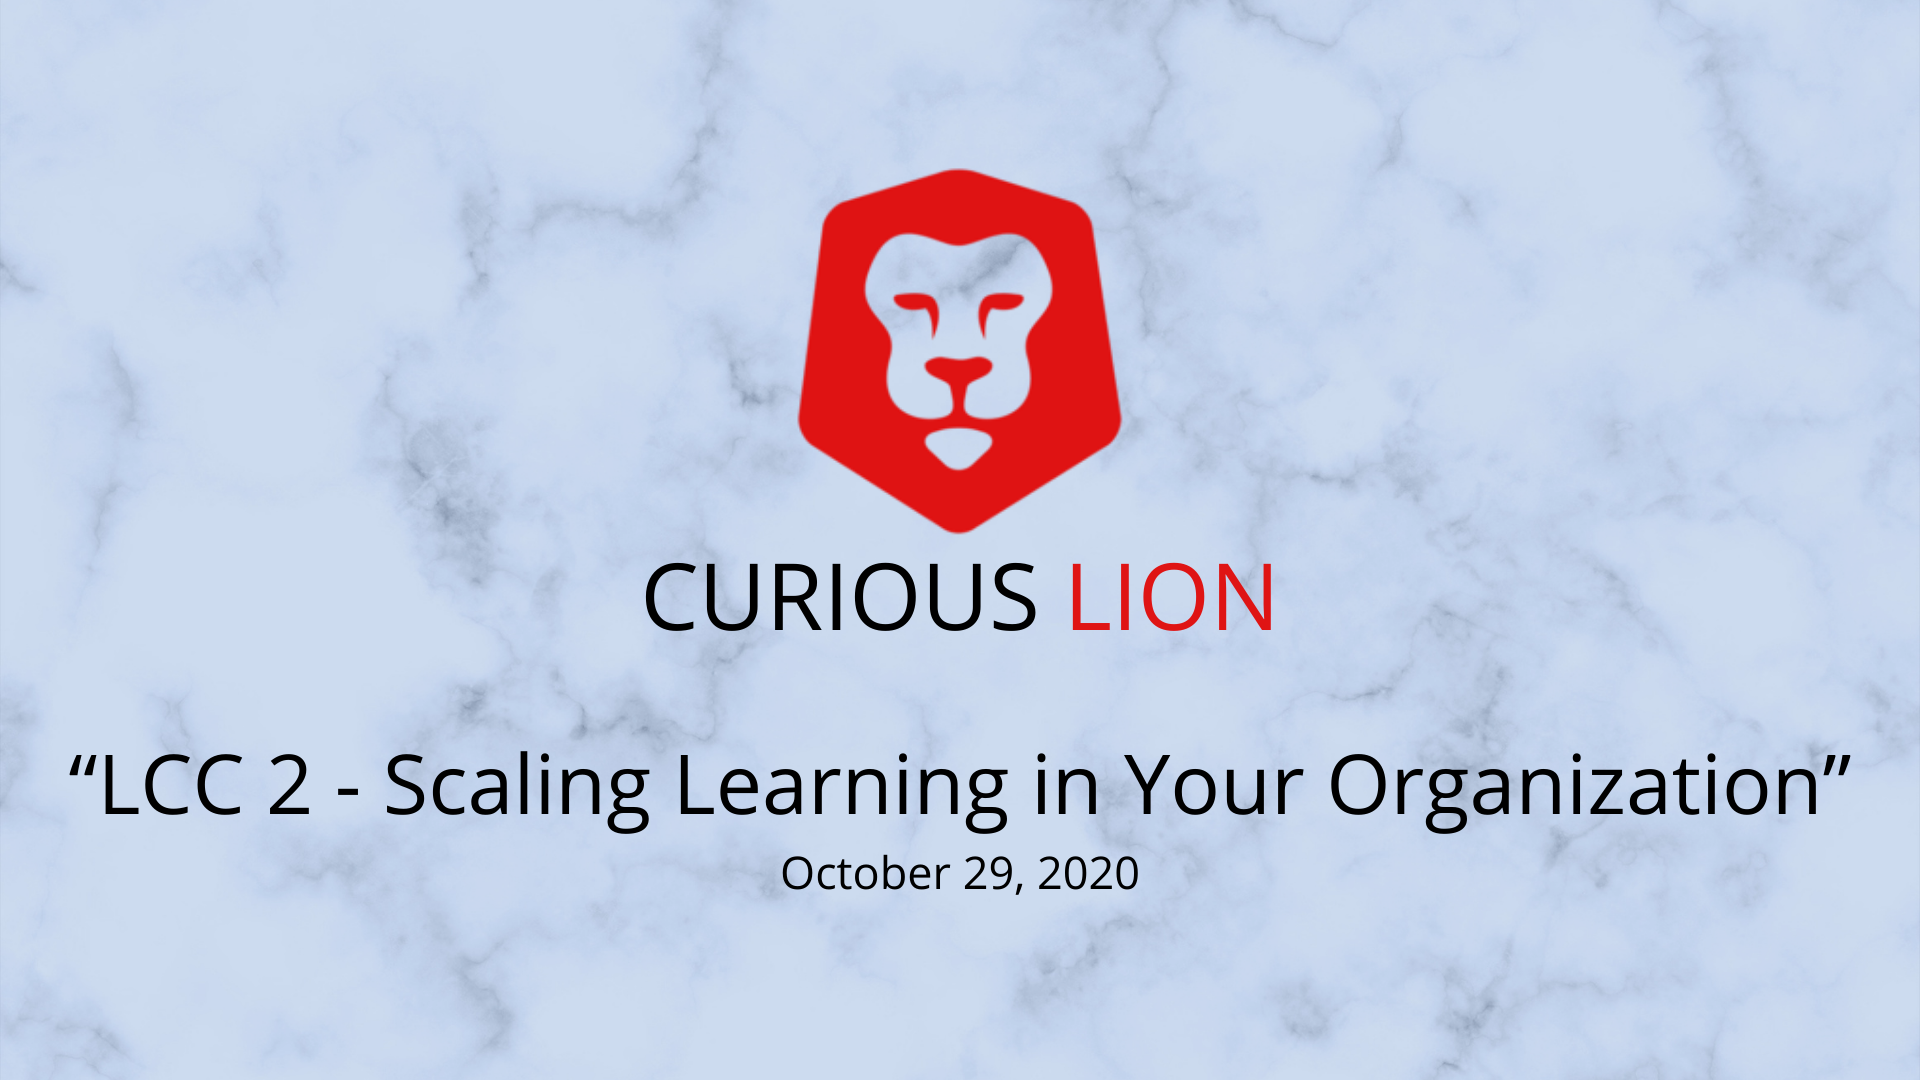 LCC 2 - Scaling Learning in Your Organization